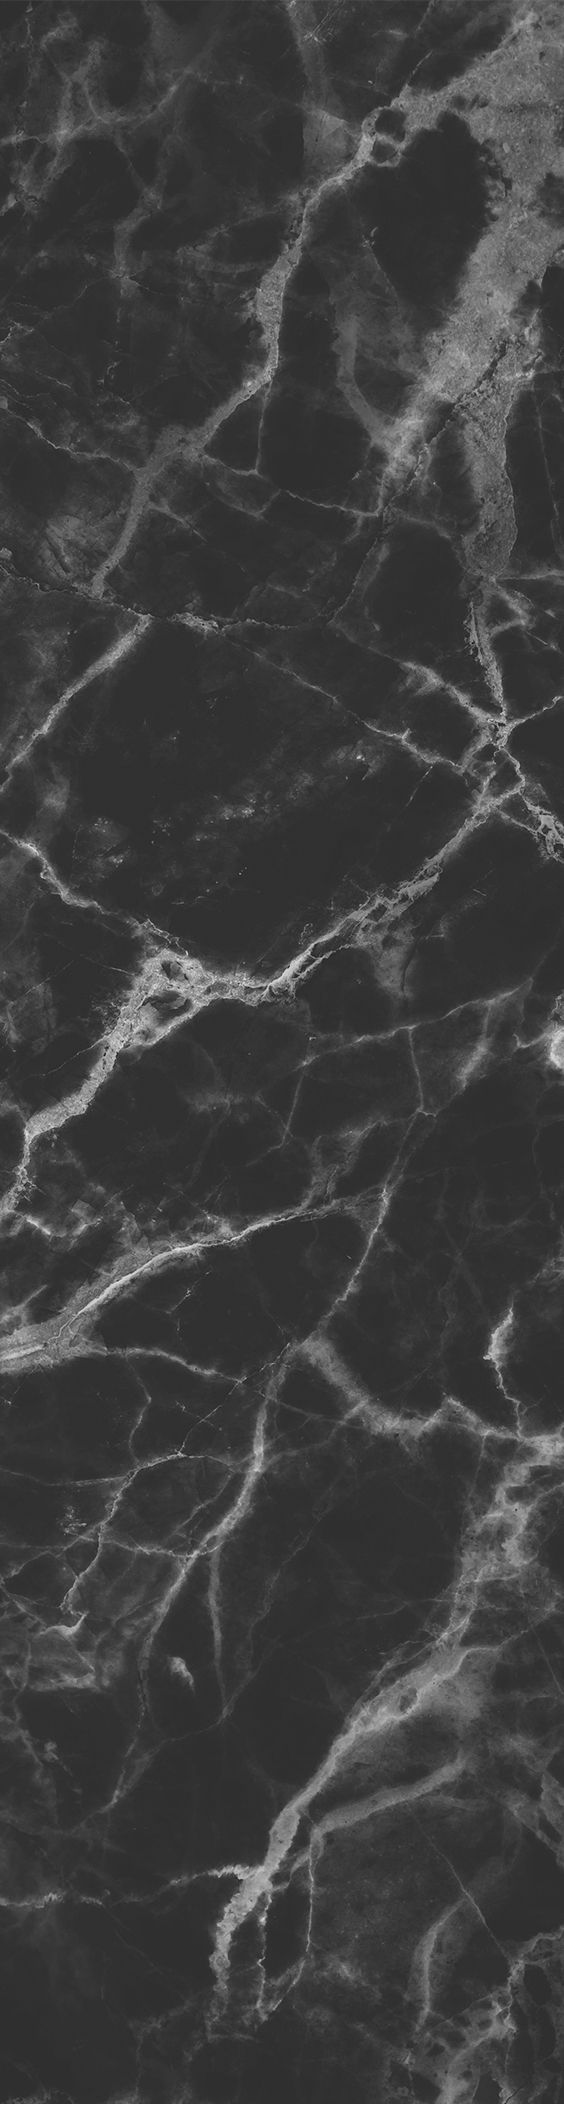 Make an impact with this beautiful black marble wallpaper mural. This texture wallpaper design would look stunning as a feature wall in modern, monochrome living spaces.